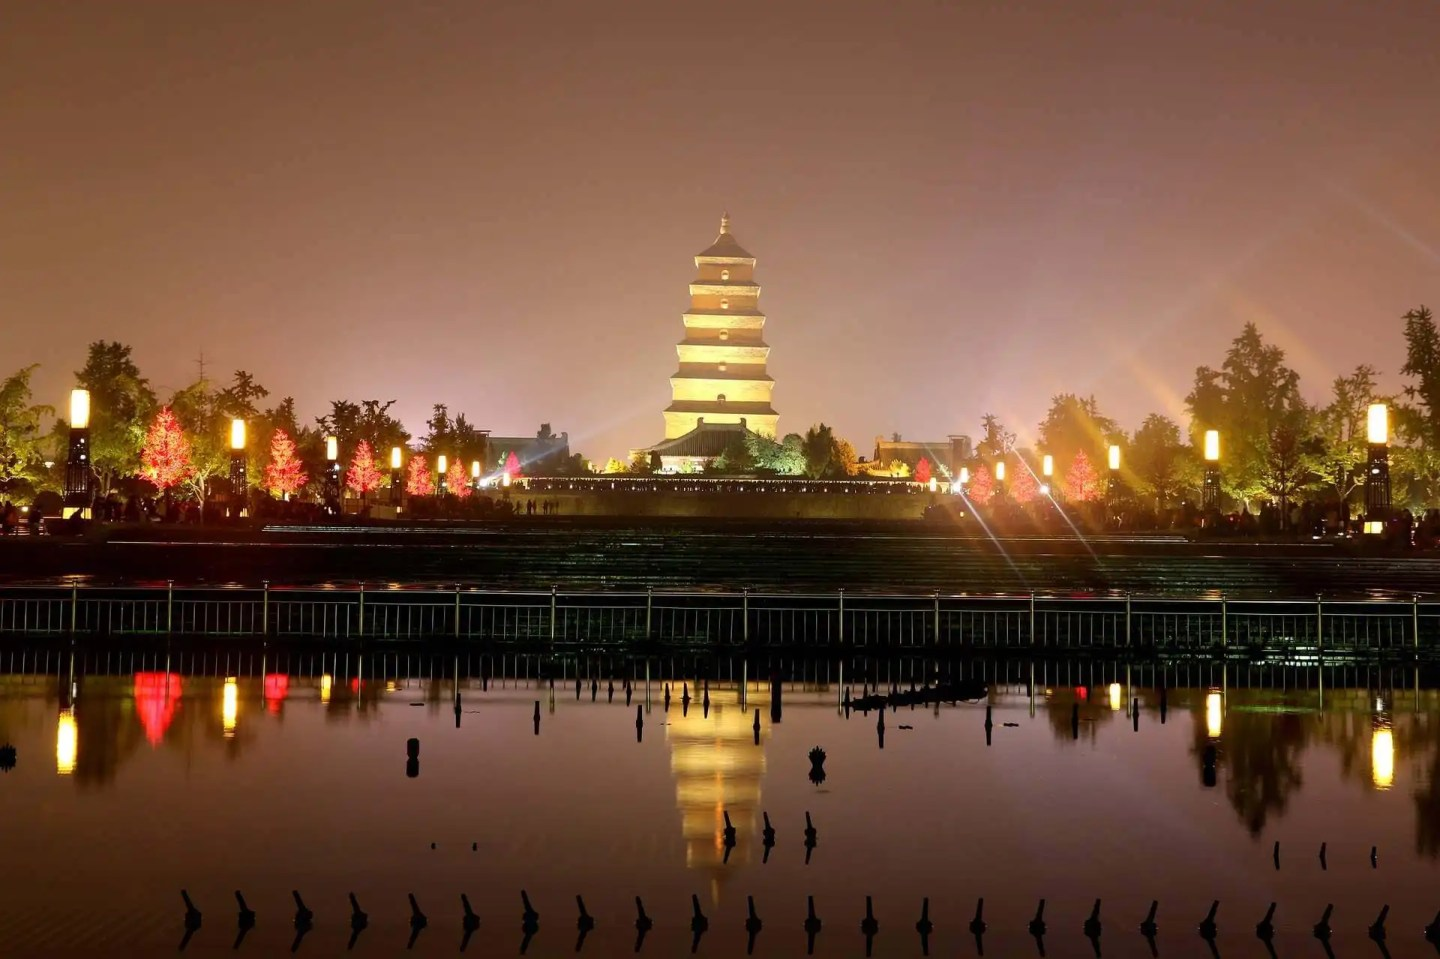 Image of the wild goose pagoda in Xian China at night